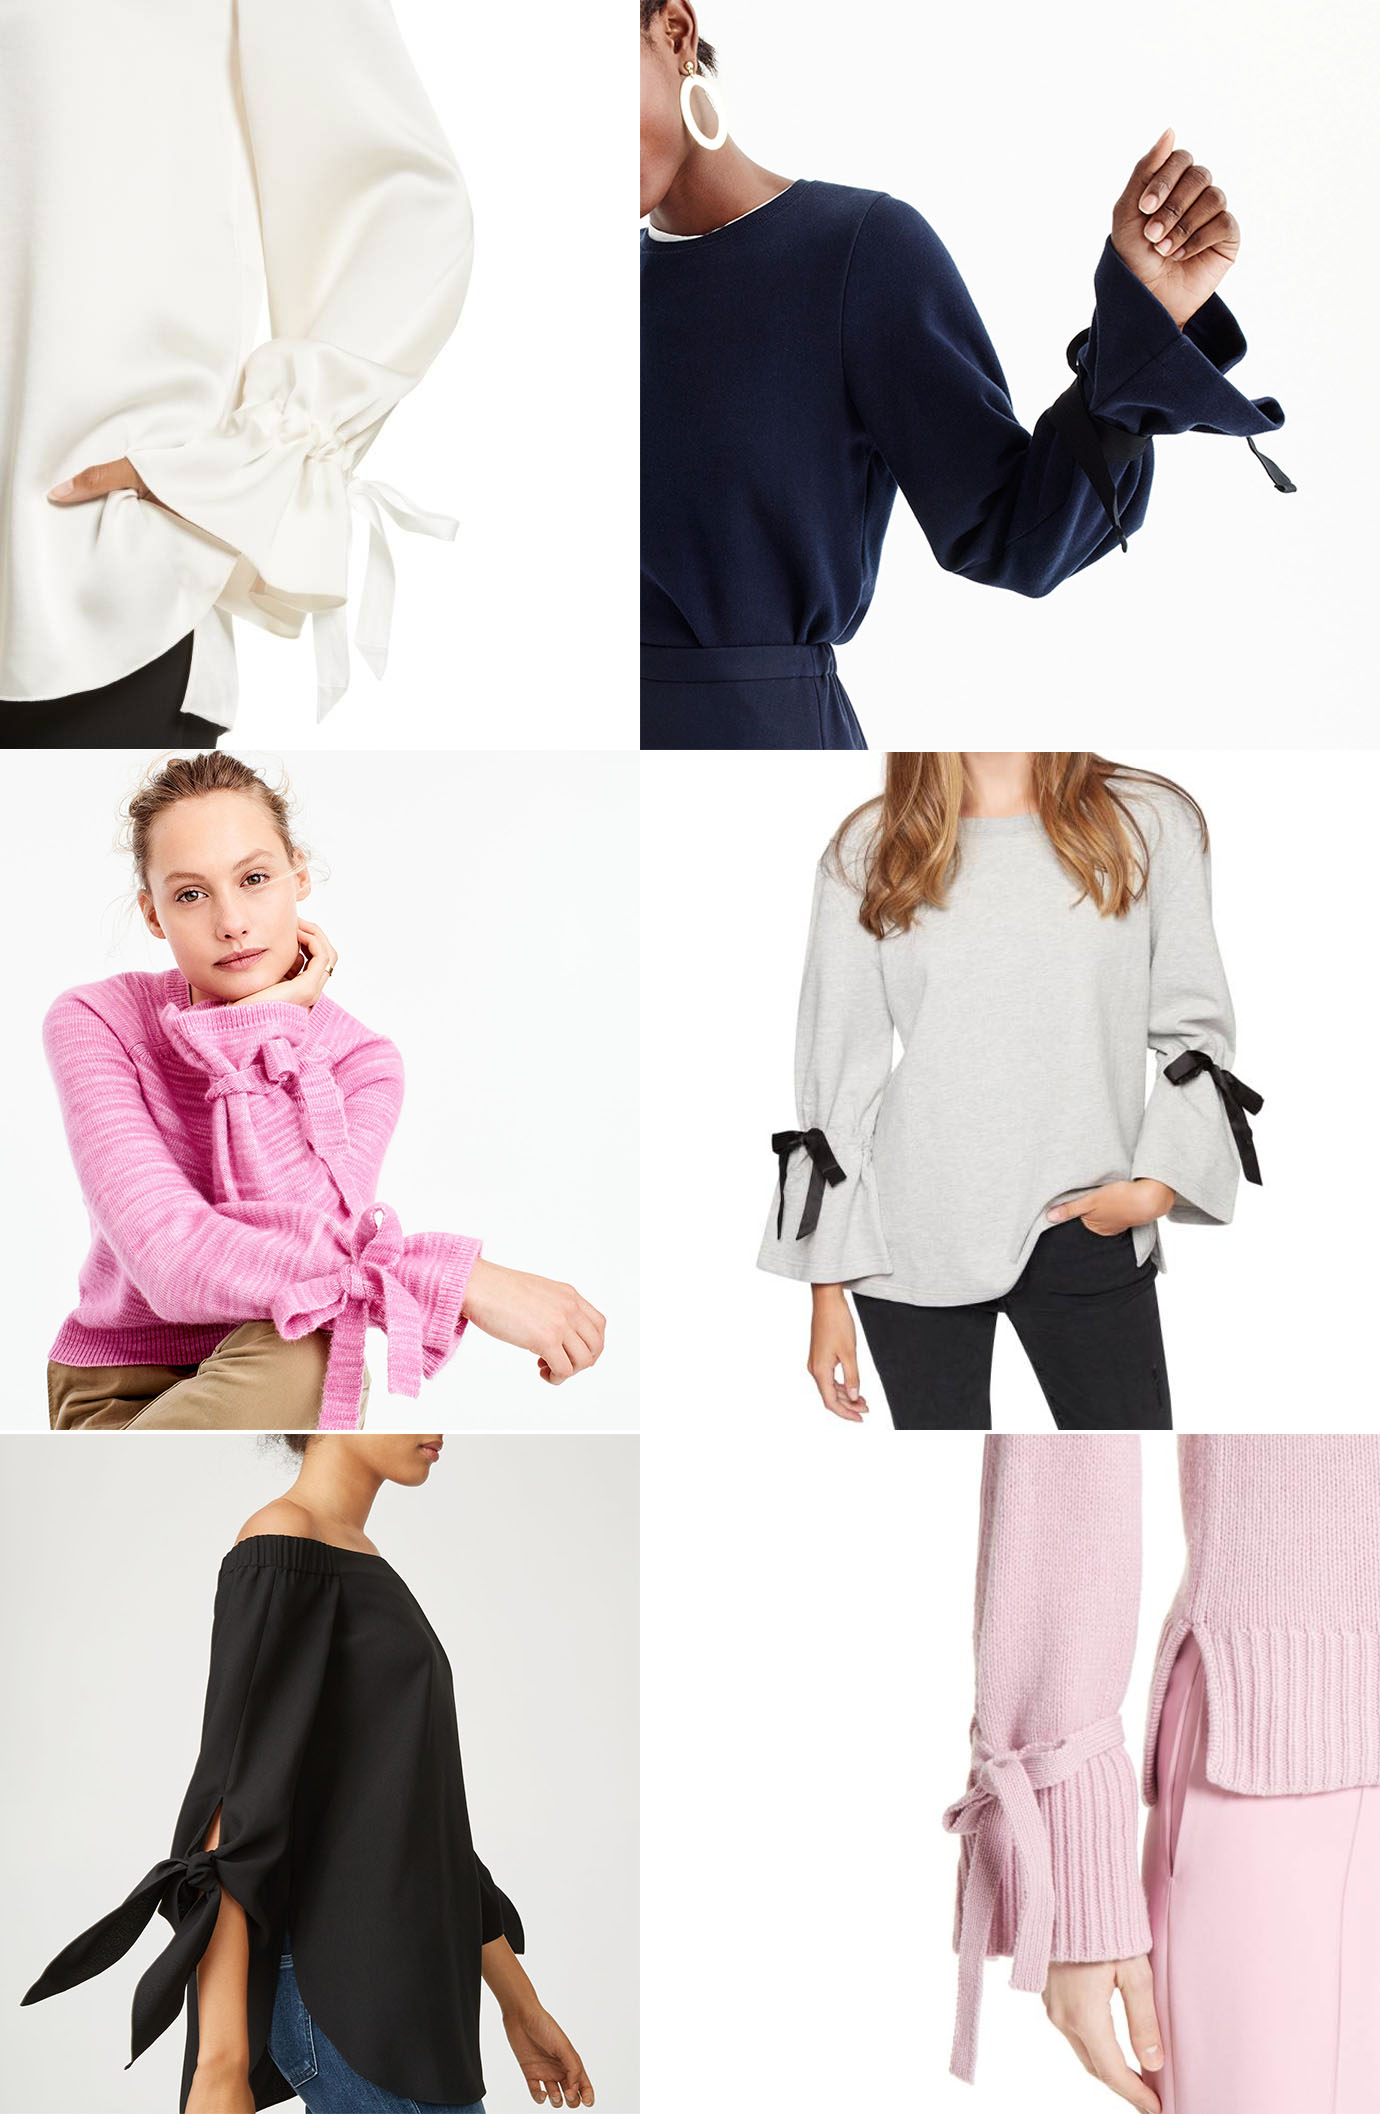 Ridgely Brode sources really good looking tie sleeve blouses and sweaters for her fall wardrobe on her blog, Ridgely's Radar.